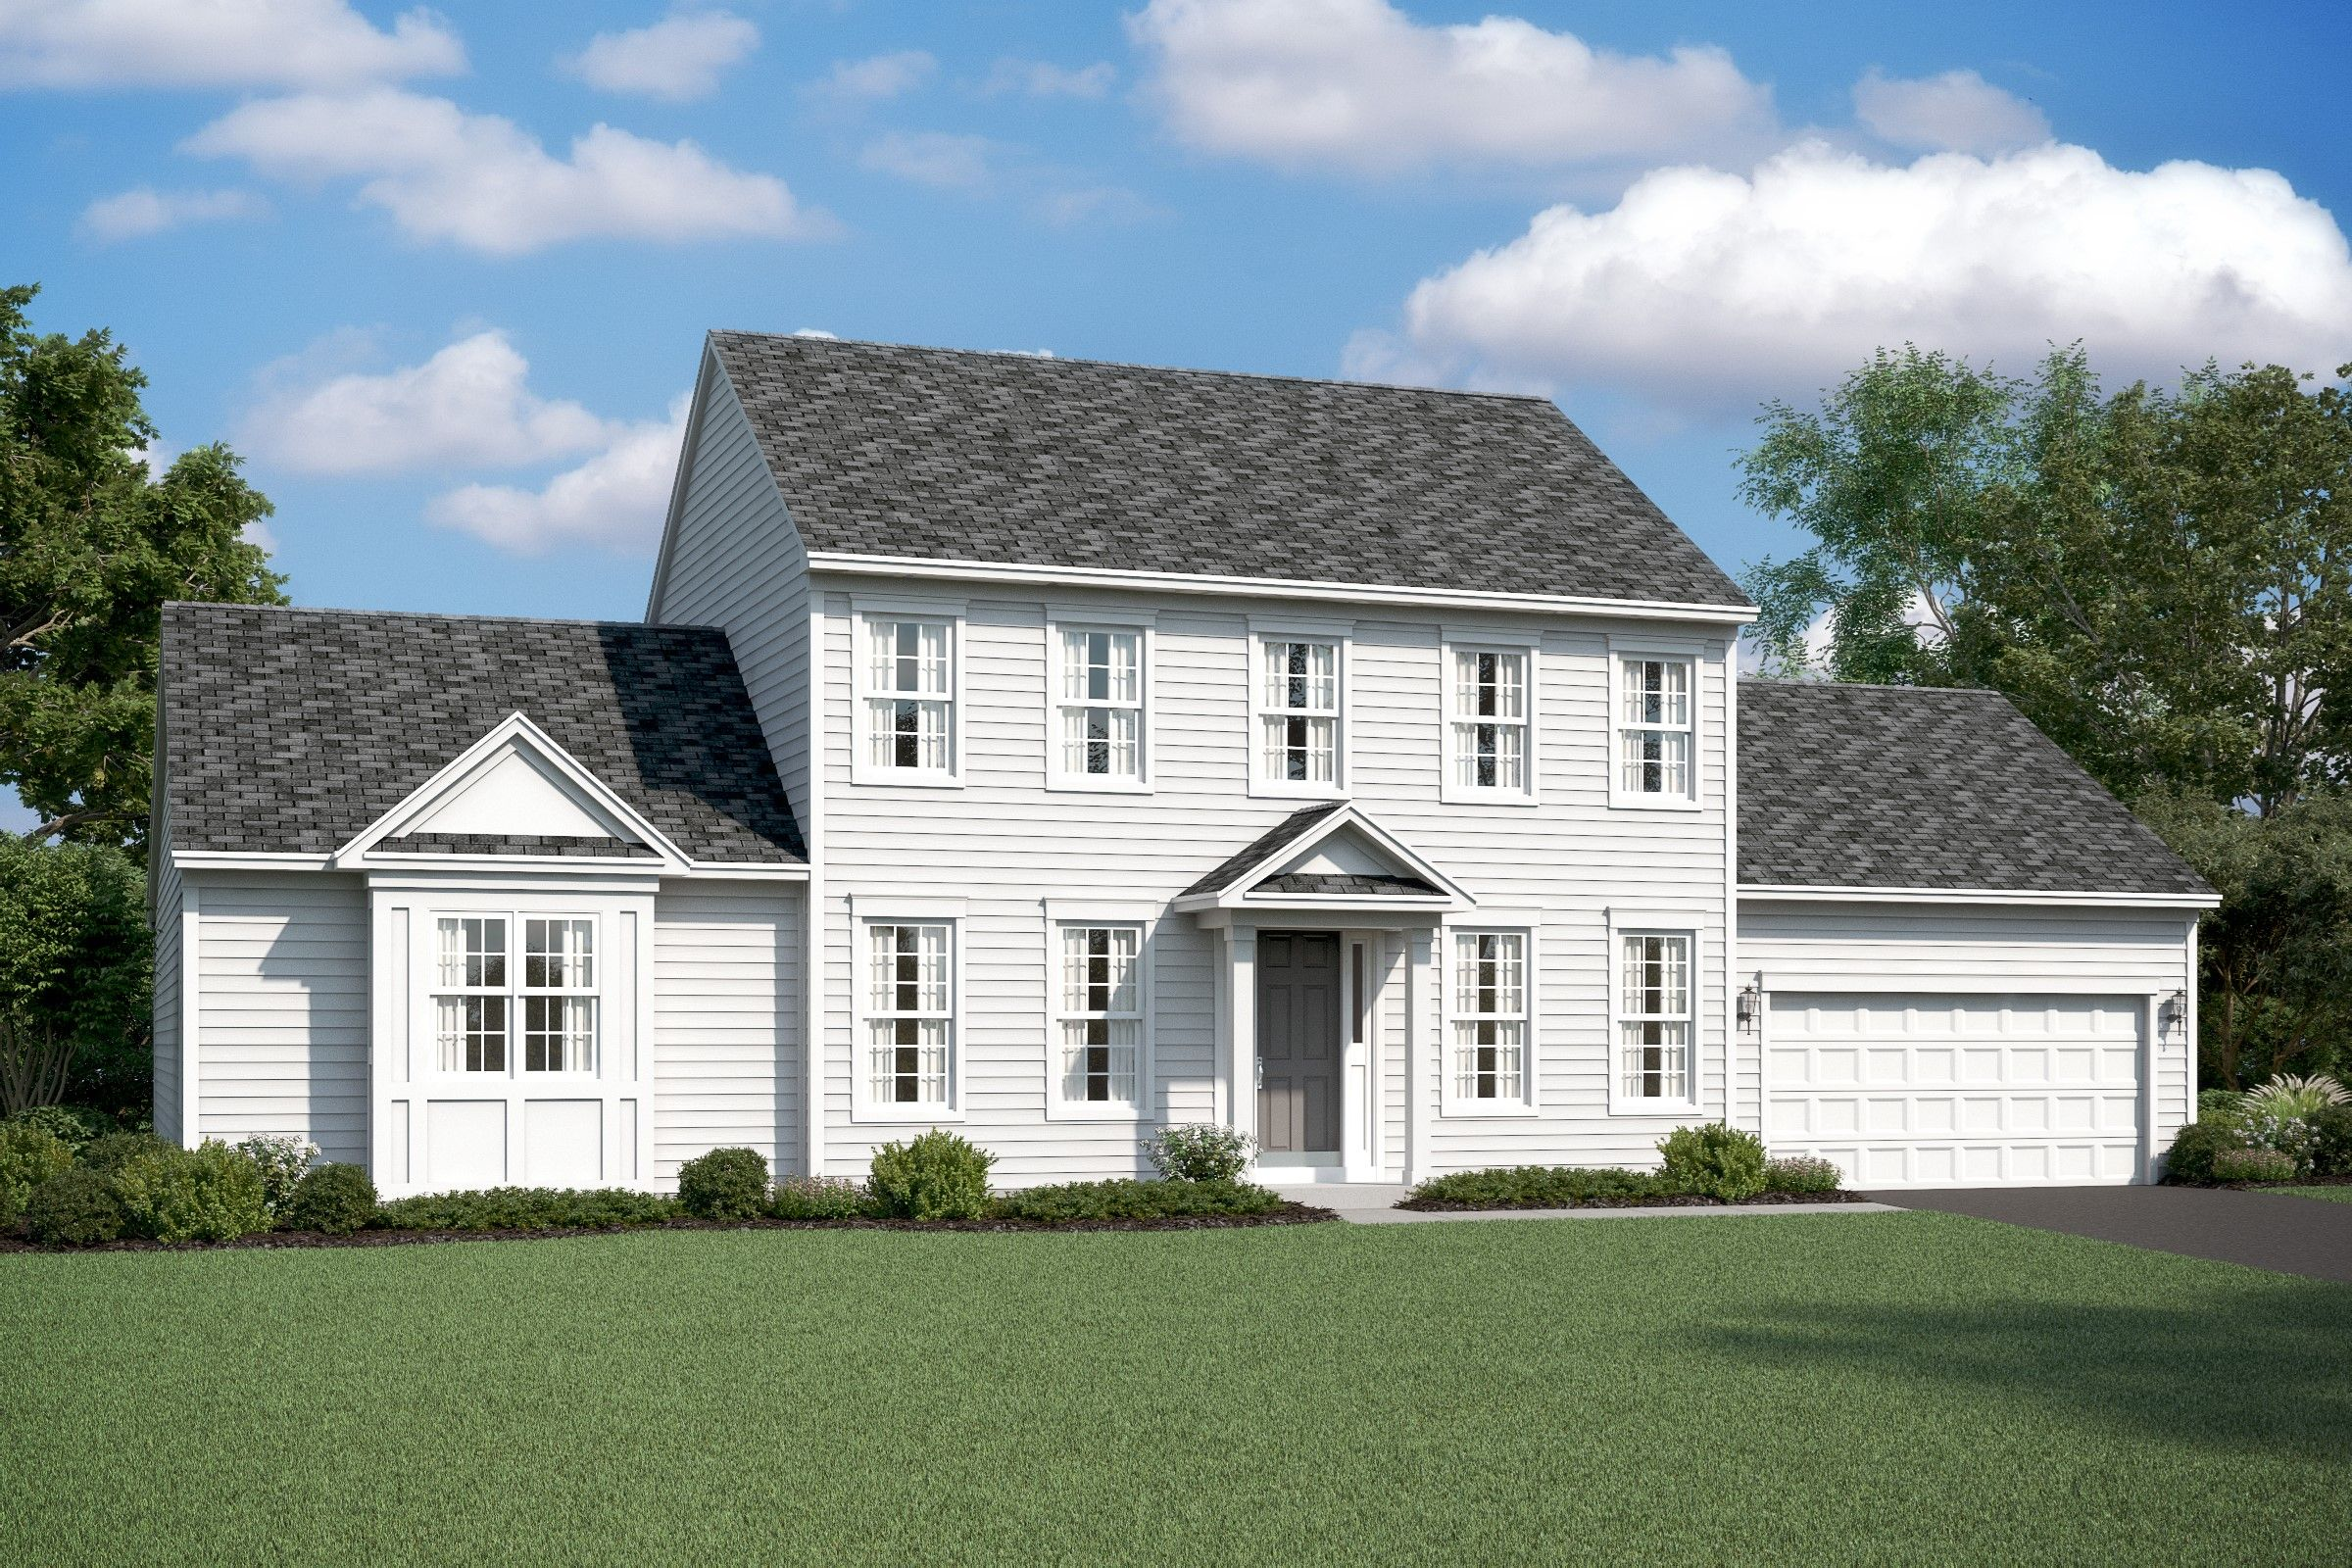 Single Family for Active at The Reserves At Leeland Station - San Michele 120 Perth Drive Fredericksburg, Virginia 22405 United States